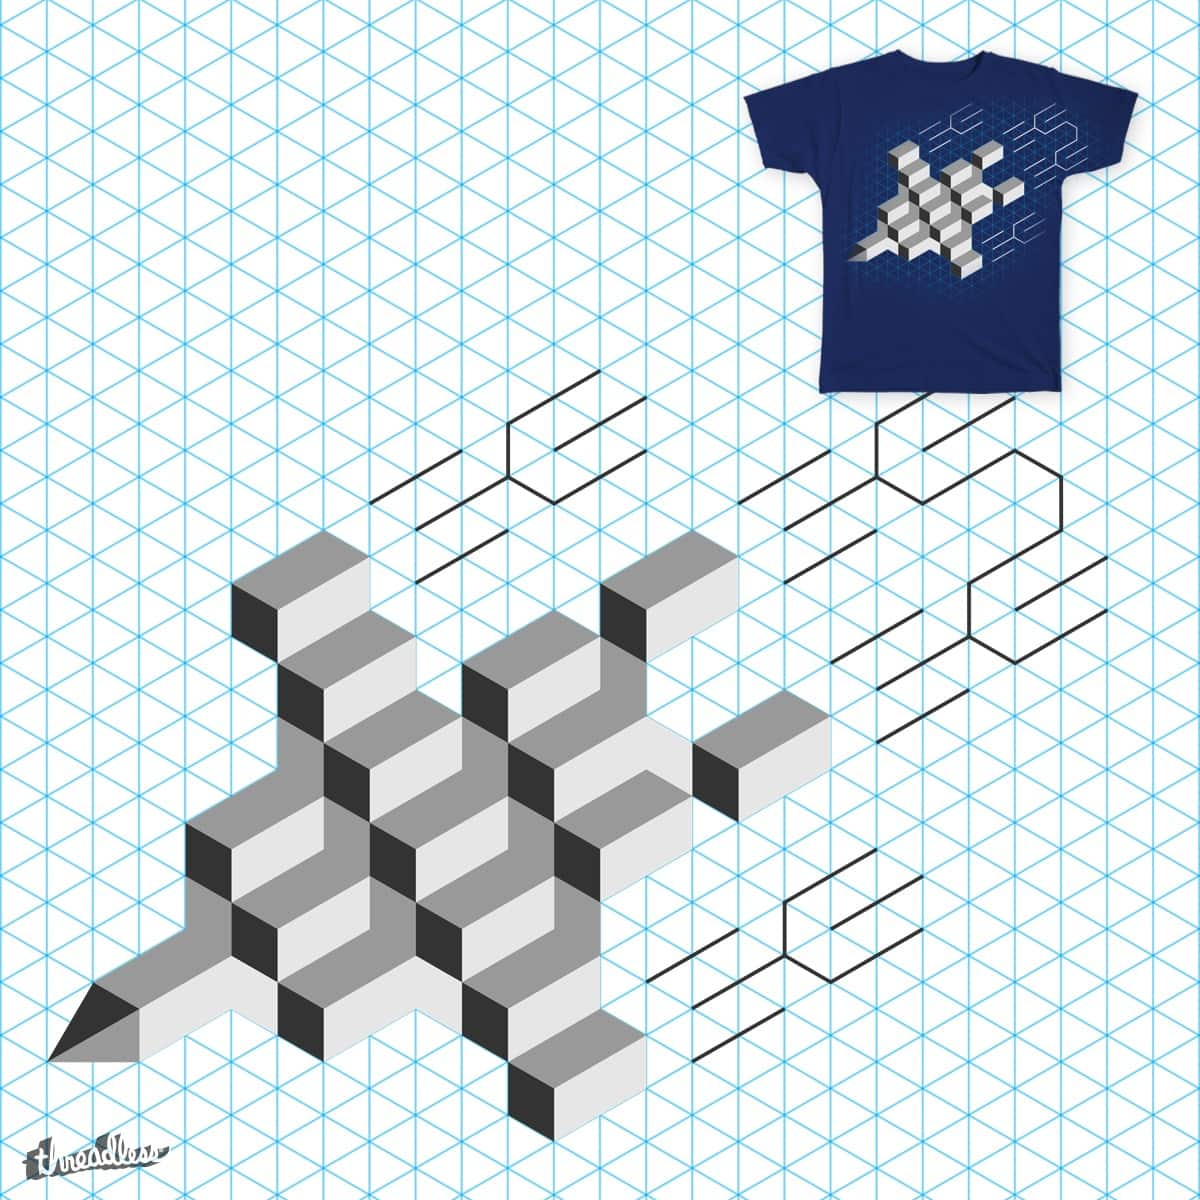 Isometric Fighter Jet by modular colors on Threadless